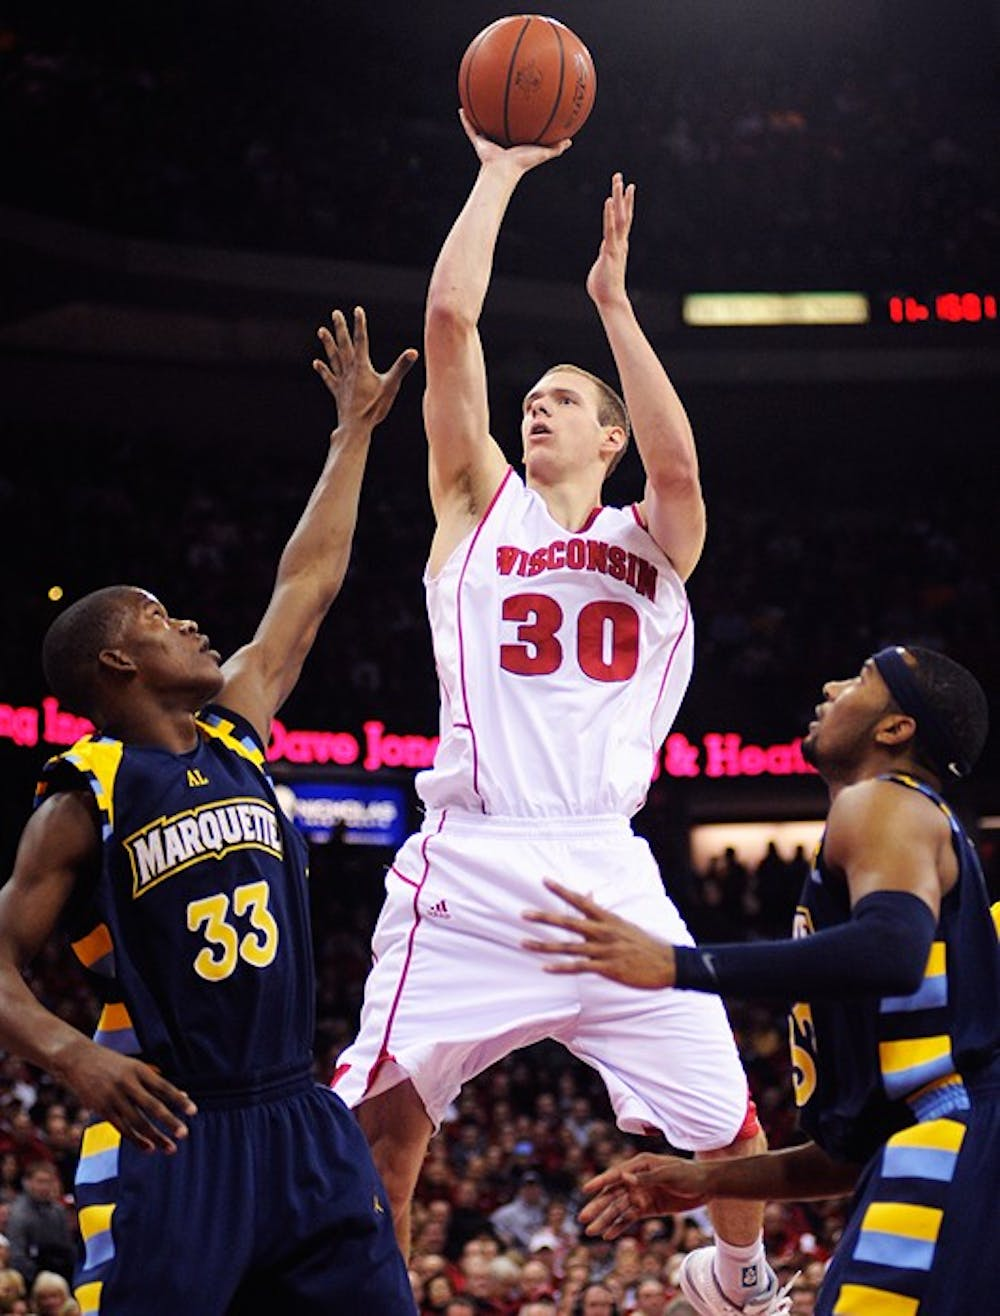 UW bounces back with win over rival Marquette